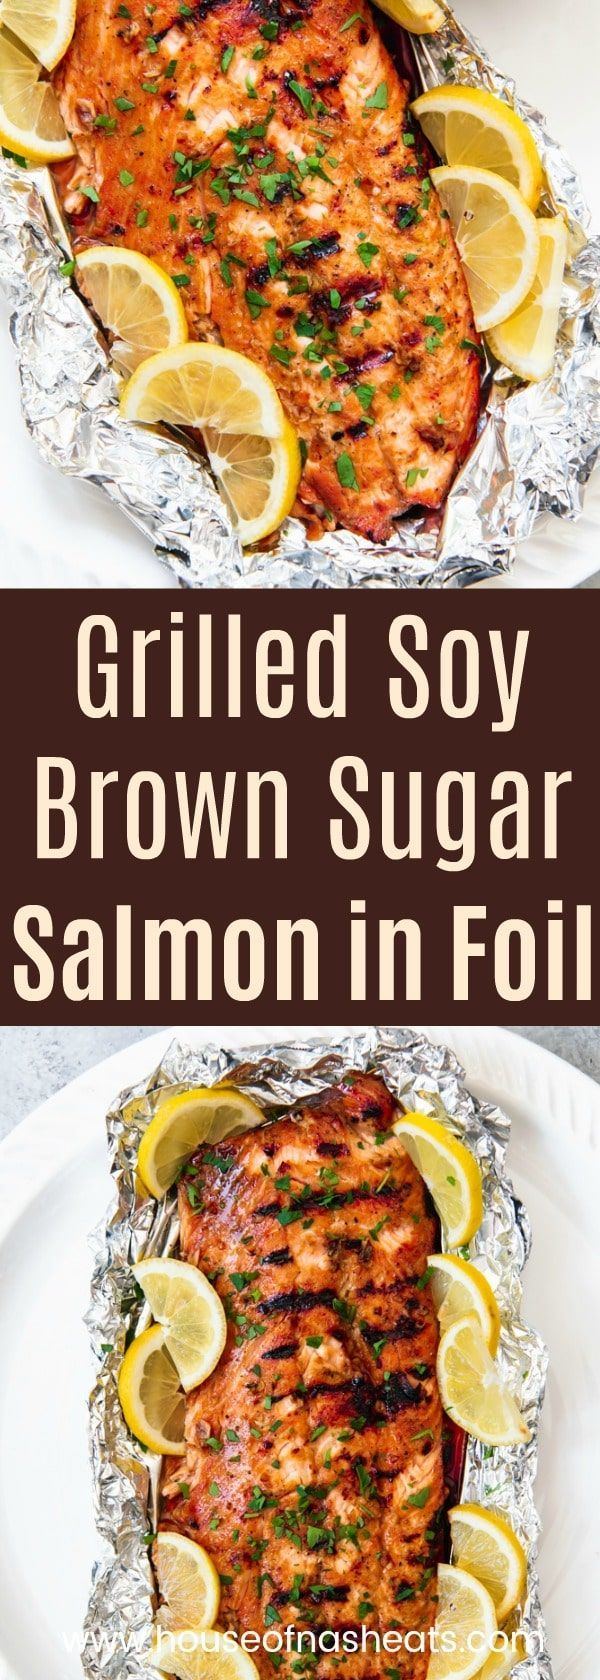 Grilling this Soy Brown Sugar Salmon in Foil makes for an easy weeknight dinner that is impressive enough to serve as weekend fare for guests The salmon is first ma...